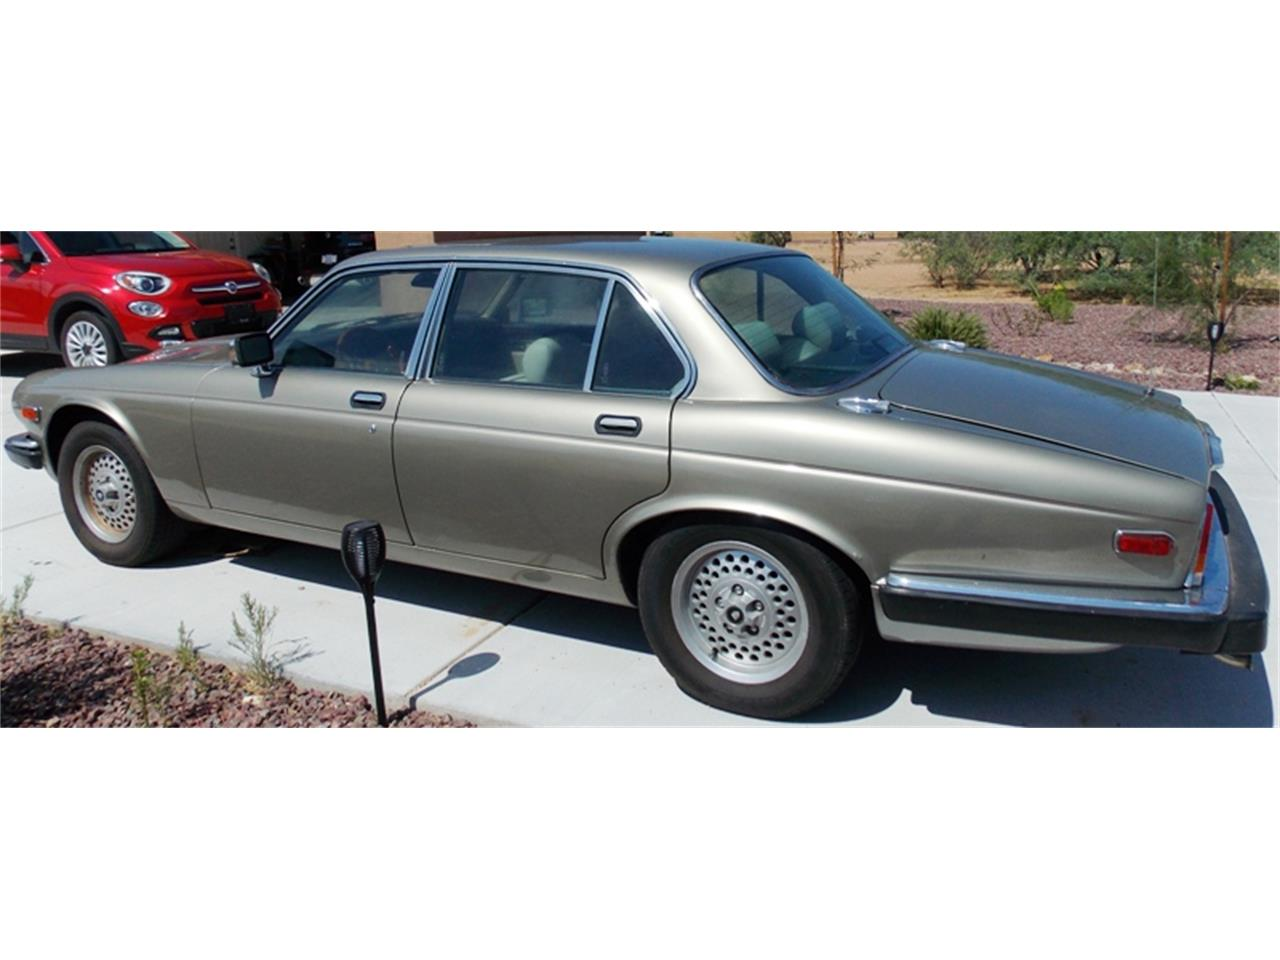 Large Picture of 1986 XJ6 located in AZ - Arizona - QNNV